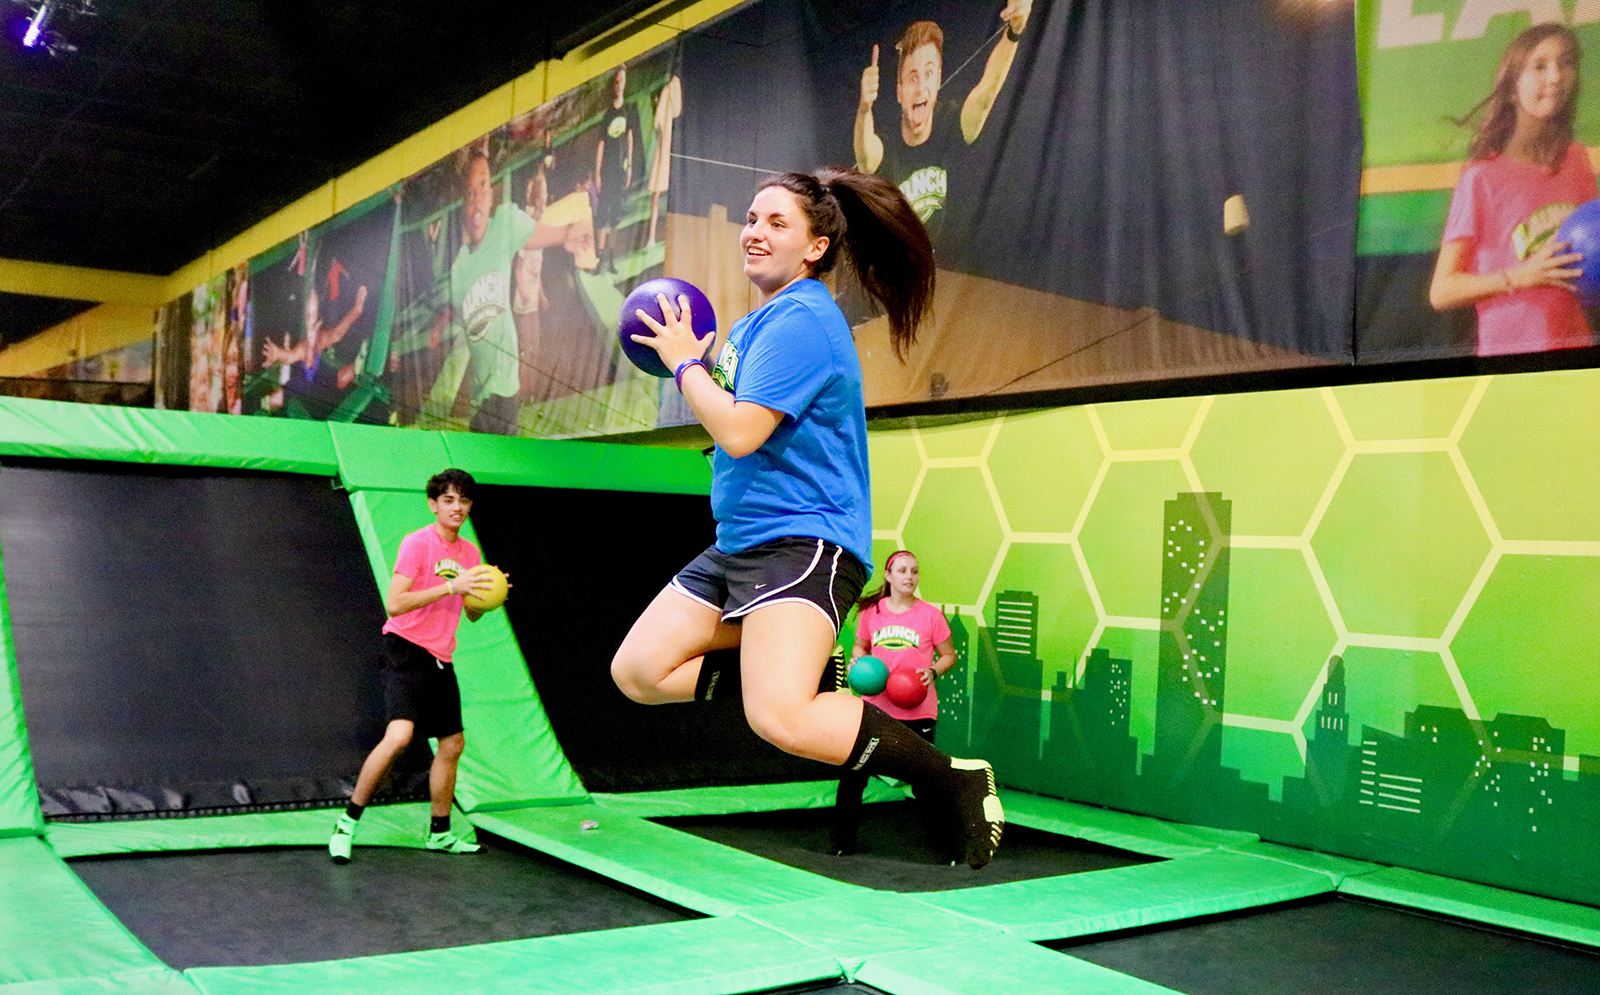 dacc07ffda Girl jumping in the air playing dodgeball at Launch Trampoline Park